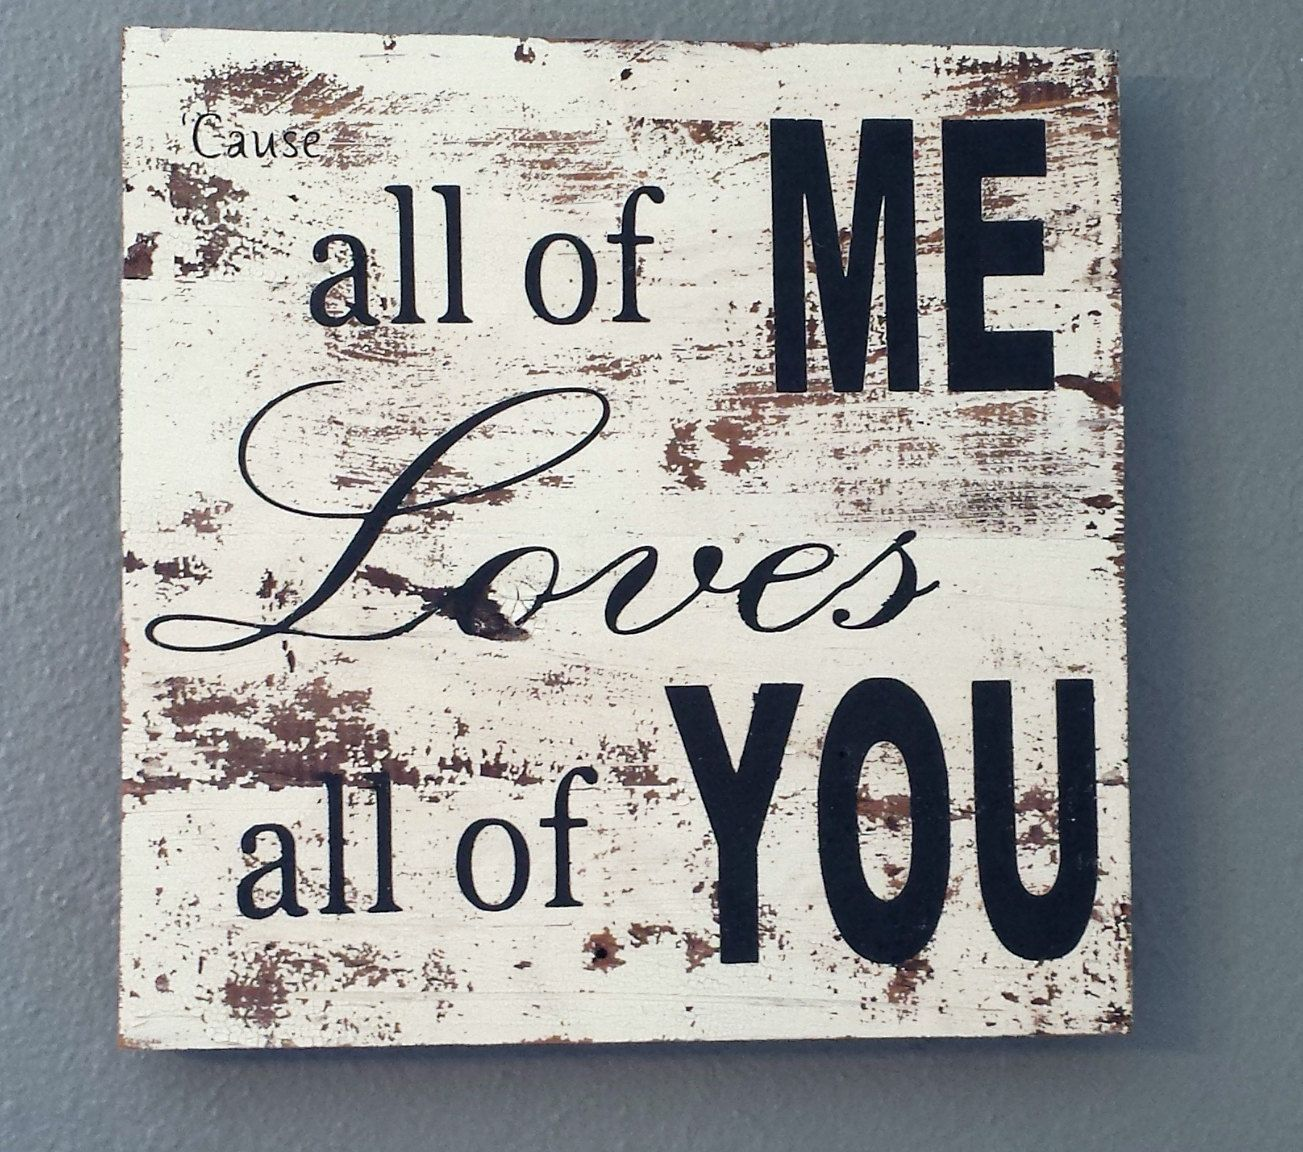 John Legend Song ALL Of ME Sign On Barnwood Barn Wood Distressed Shabby Chic Cottage Primitive Home Decor Aged Antique Wedding Gift Photo By ThePinkToolBox